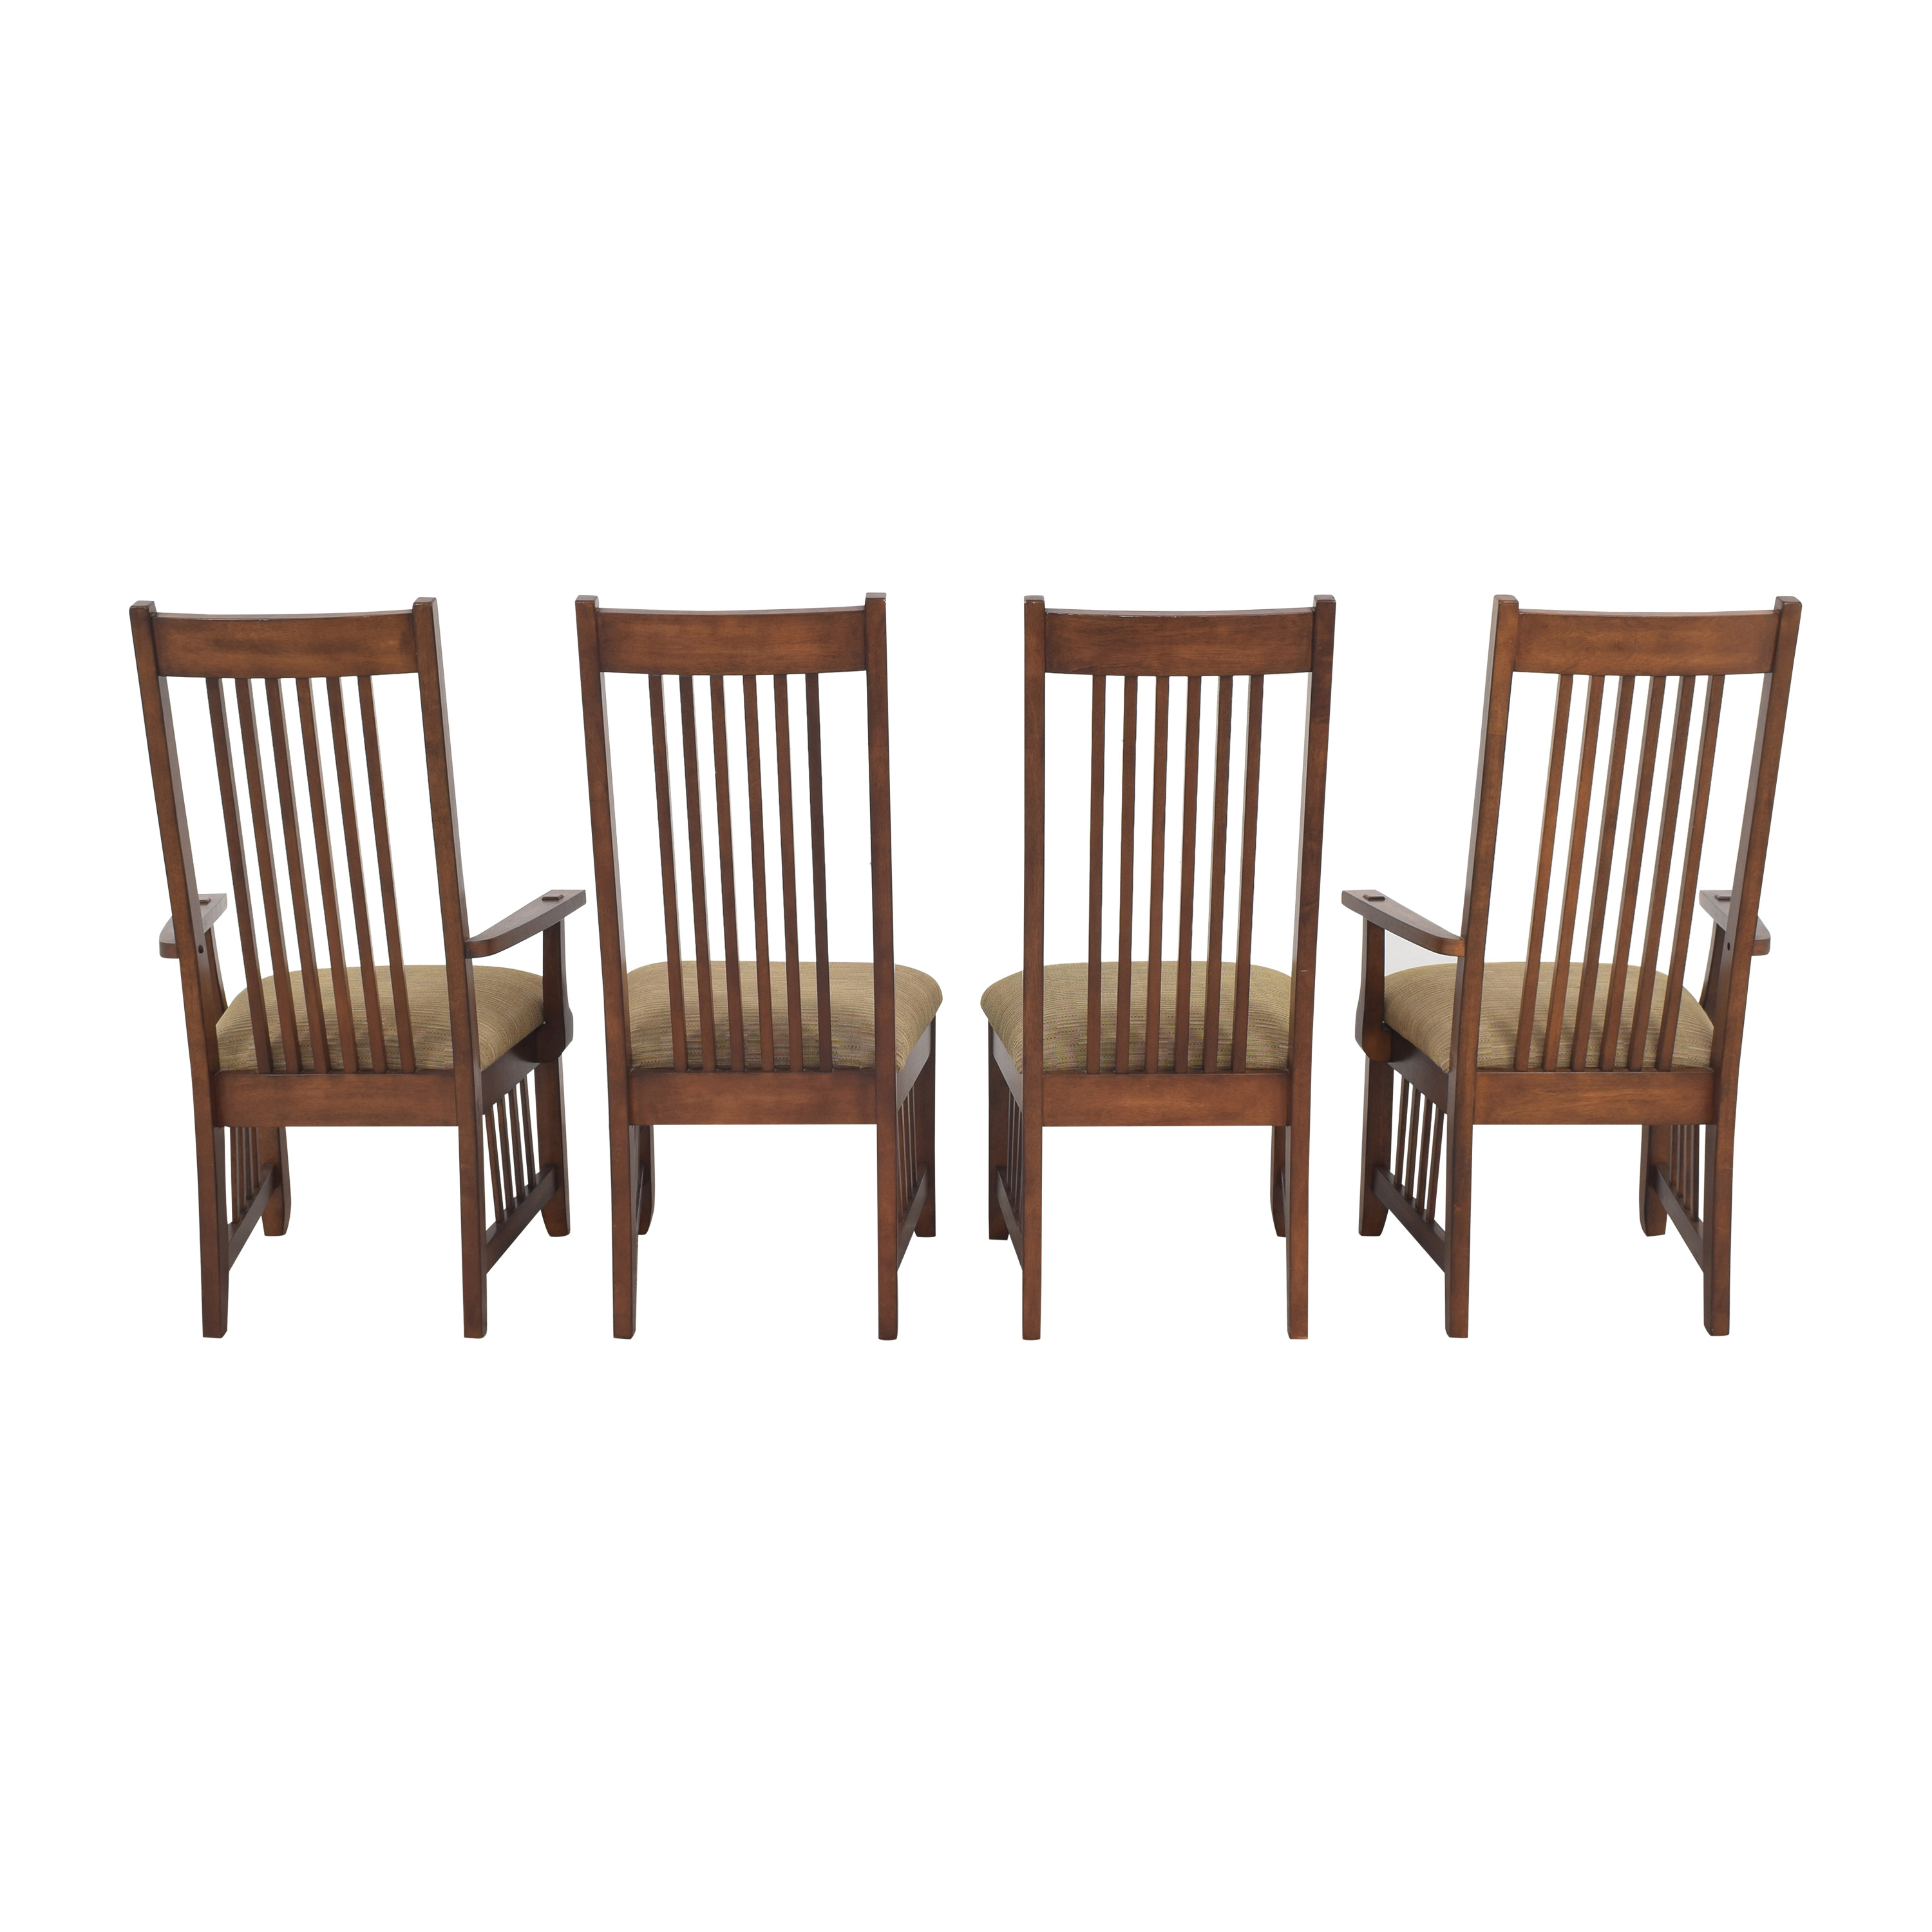 Green River Furniture Green River Mission Style Dining Chairs coupon